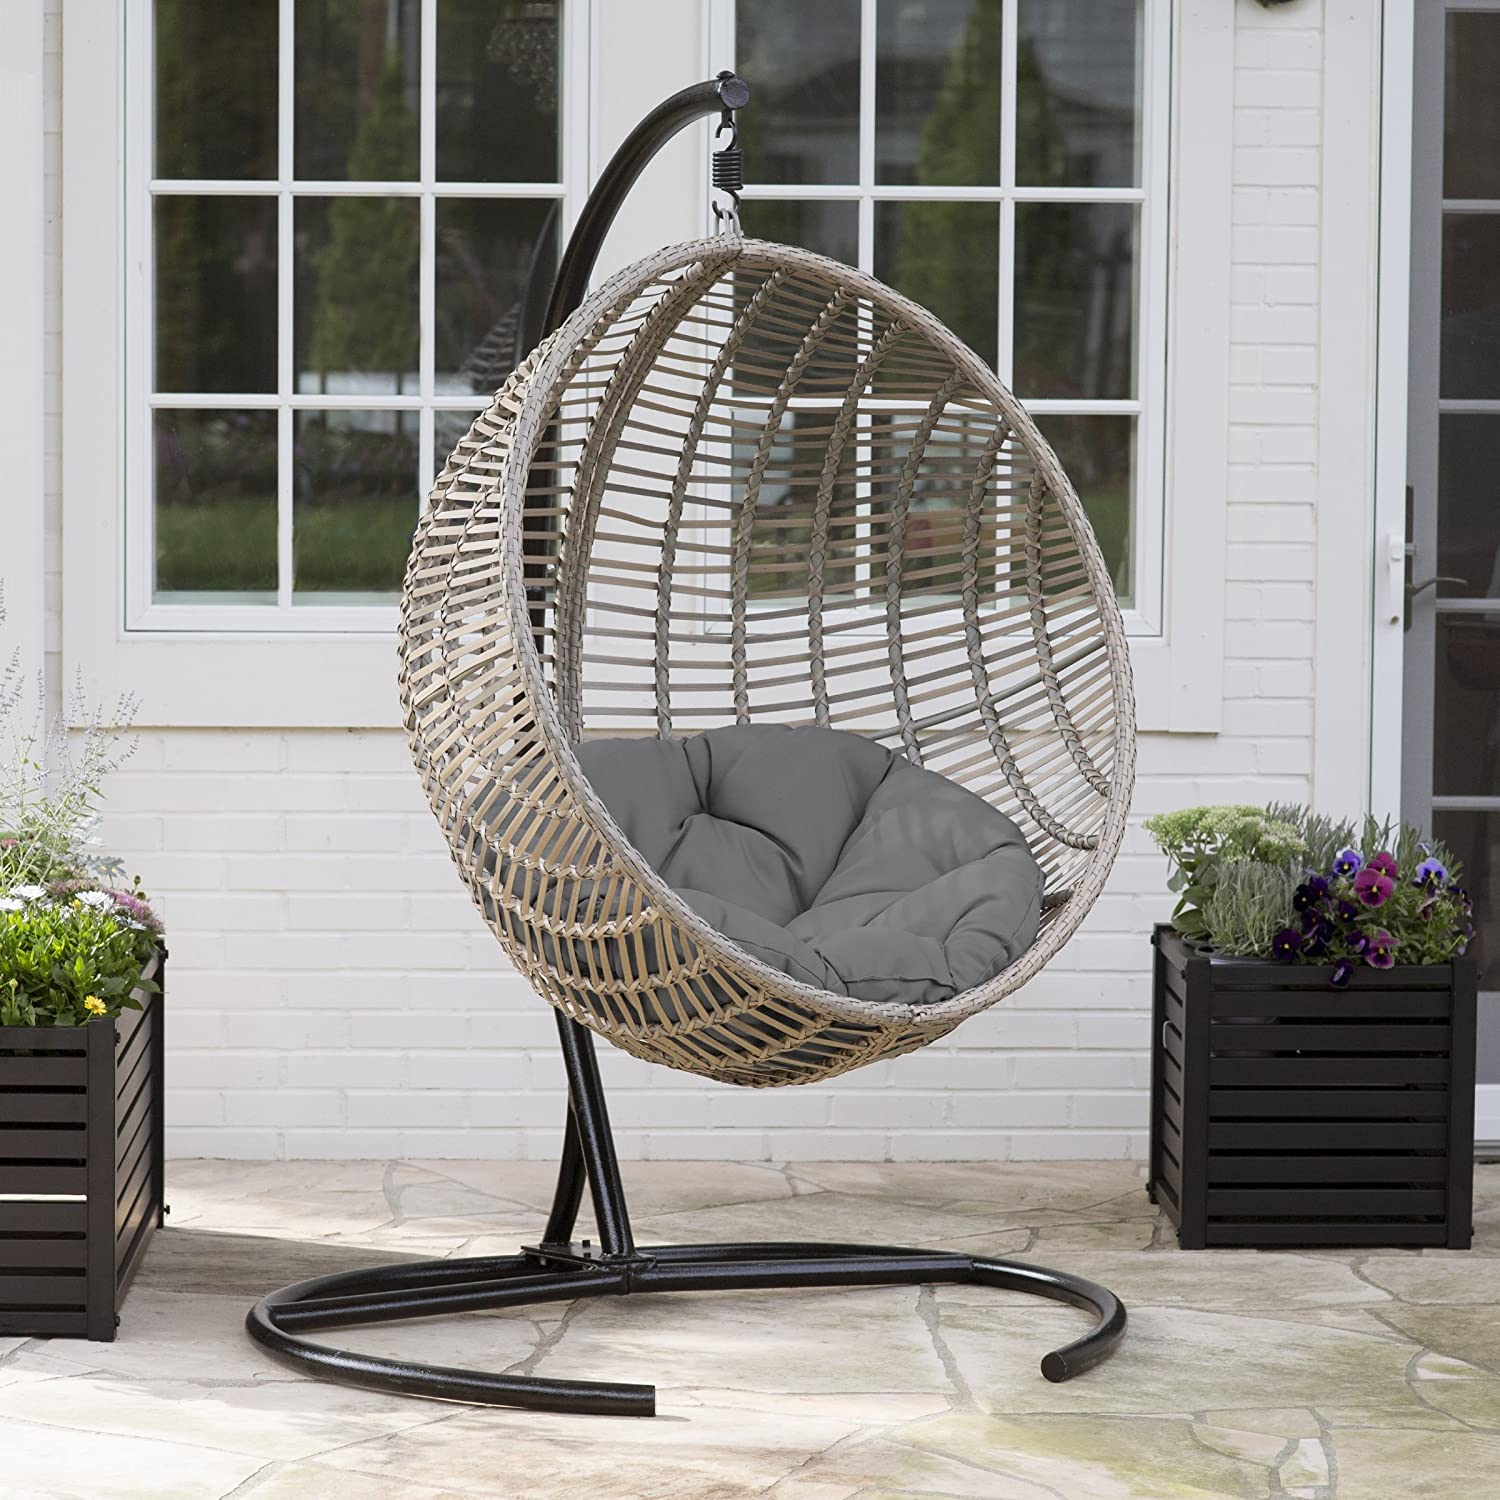 Grey Model 1 Hanging Egg Swing Chair For Indoor Outdoor Patio Wicker Rib Hanging Egg Swing Hanging Basket Chair With Cushion And Stand Chairs Patio Dining Chairs